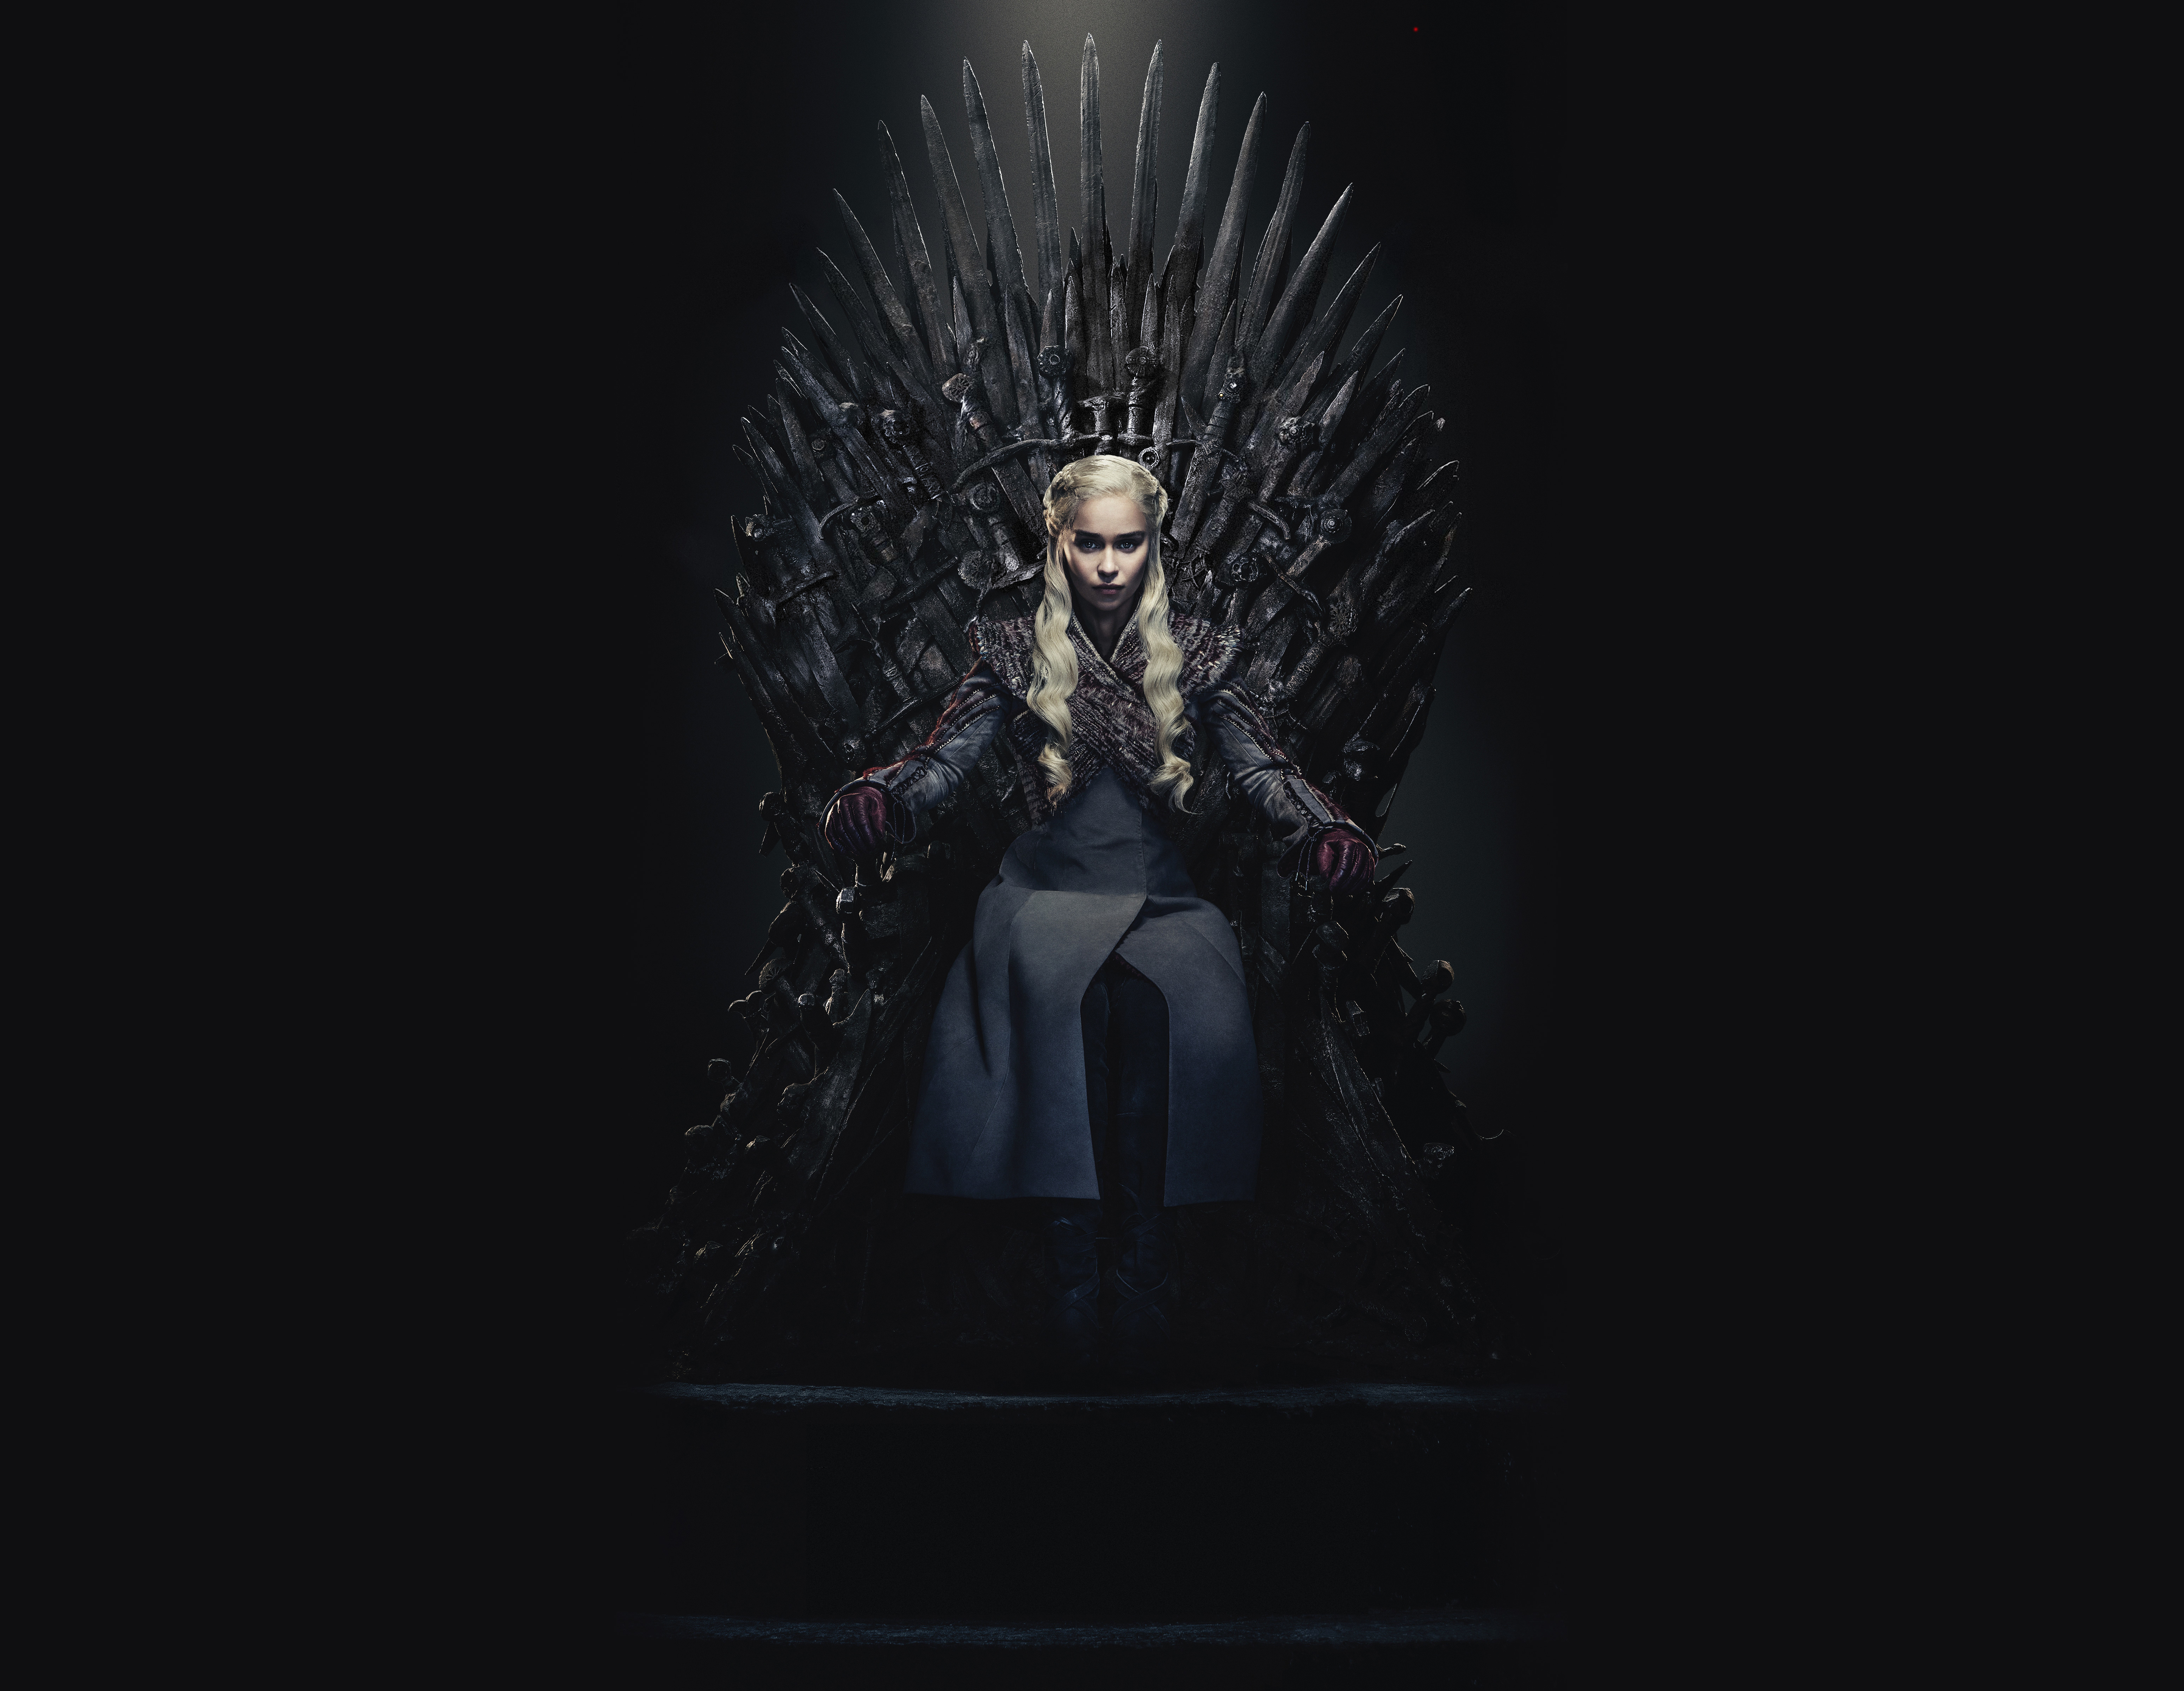 Daenerys Targaryen Queen Of the Ashes in The Iron Throne ...